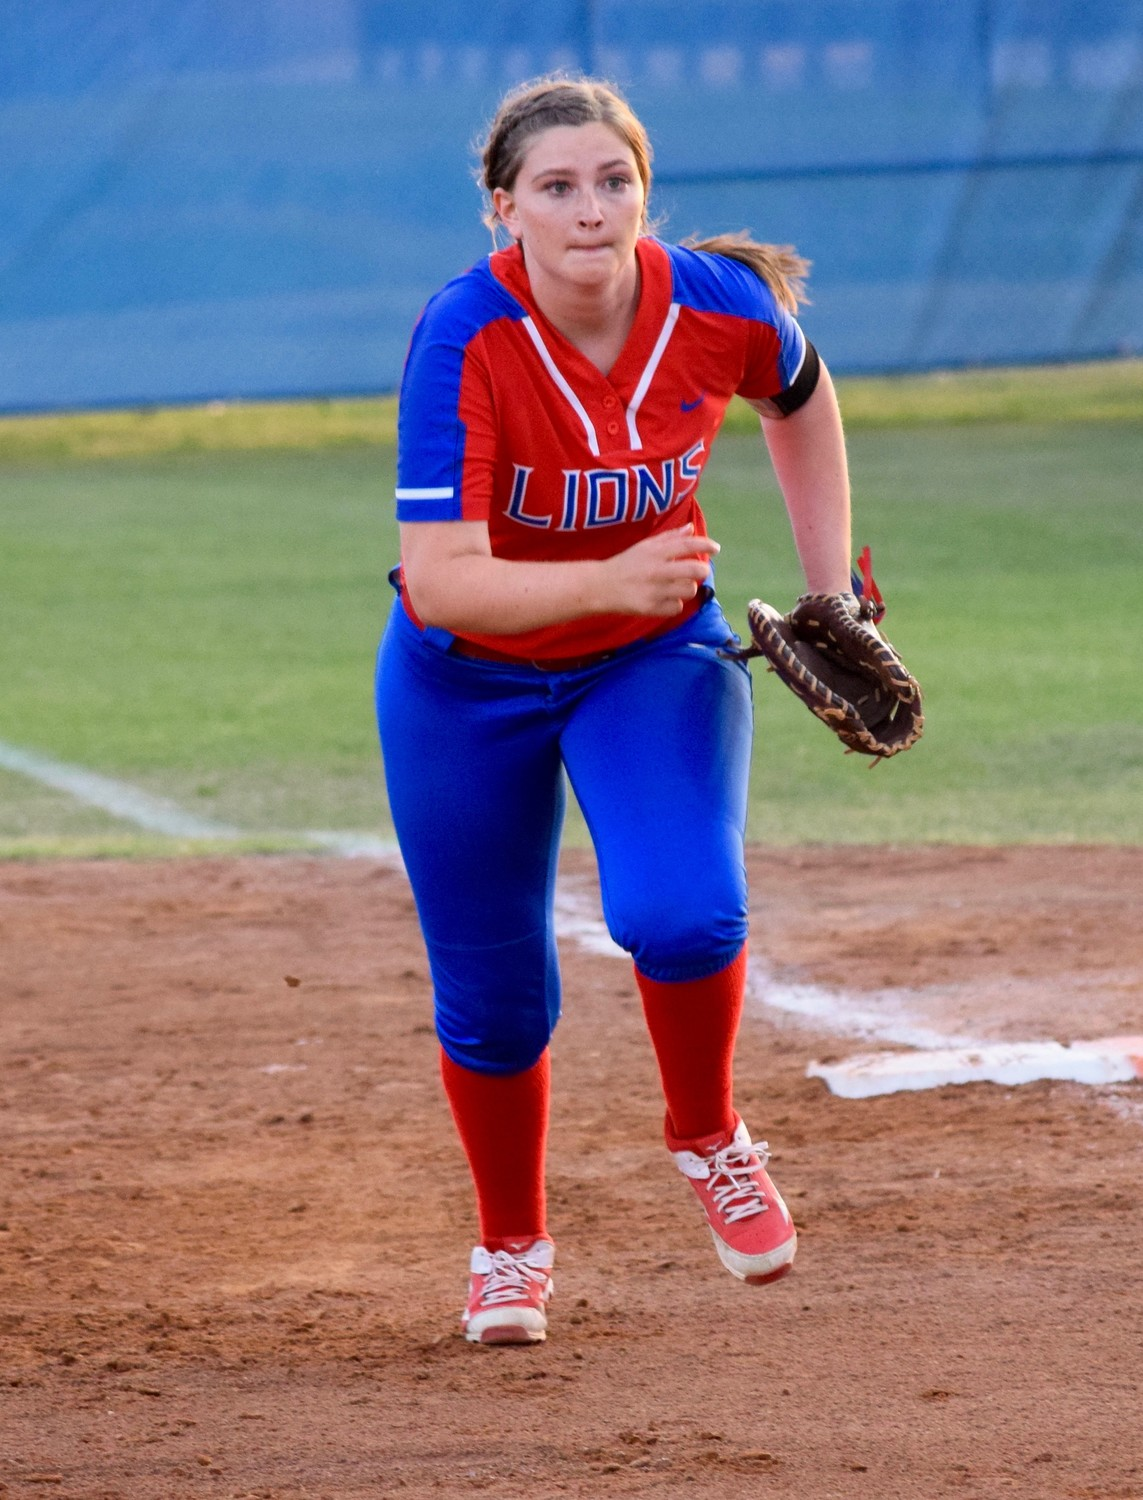 Brooke Baumgartner and Leander beat Westlake 8-5 on Tuesday night to clinch a spot in the postseason.